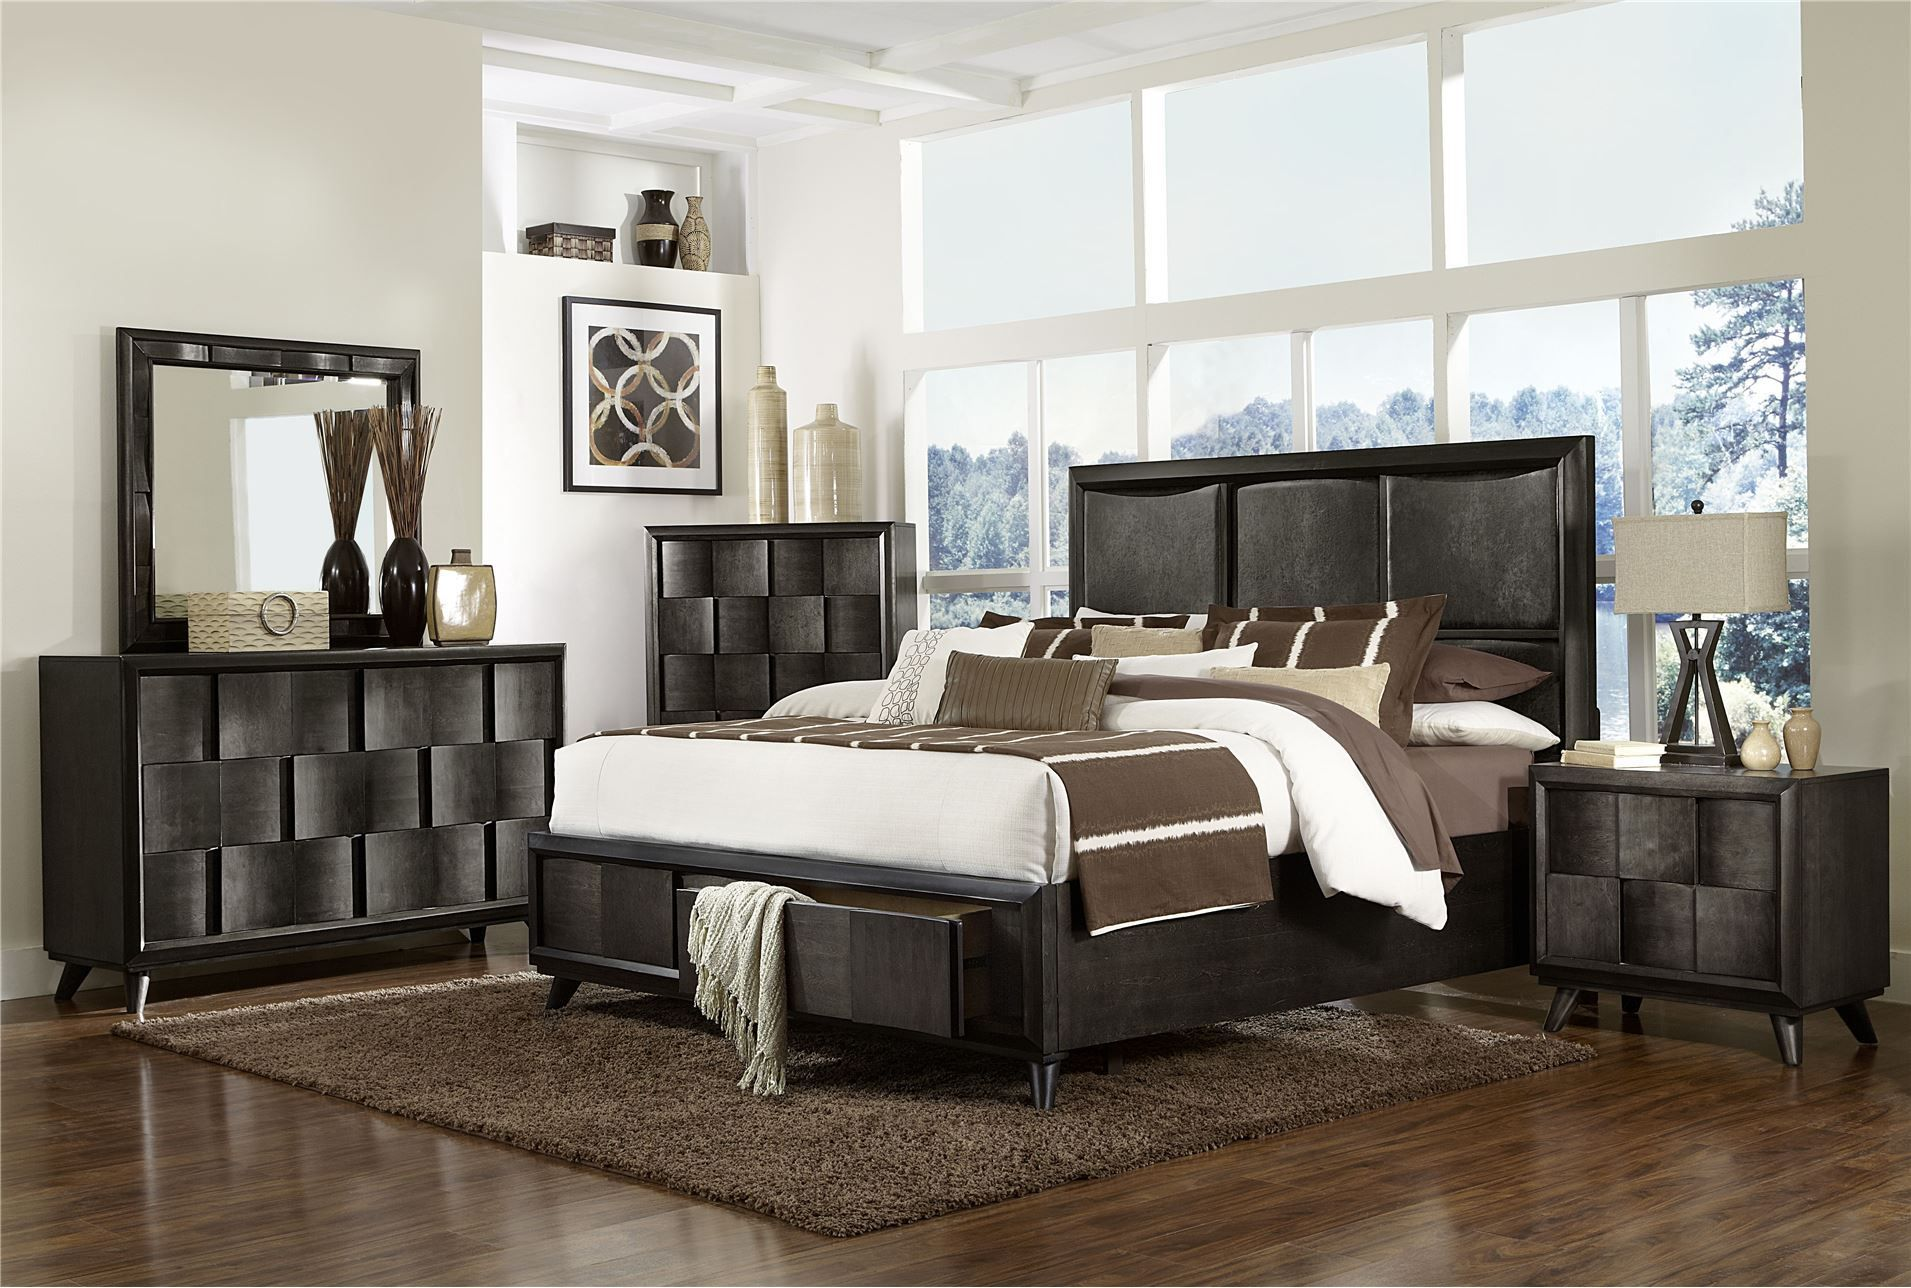 Harlowe Eastern King Storage Bed Master Bedroom Set Furniture